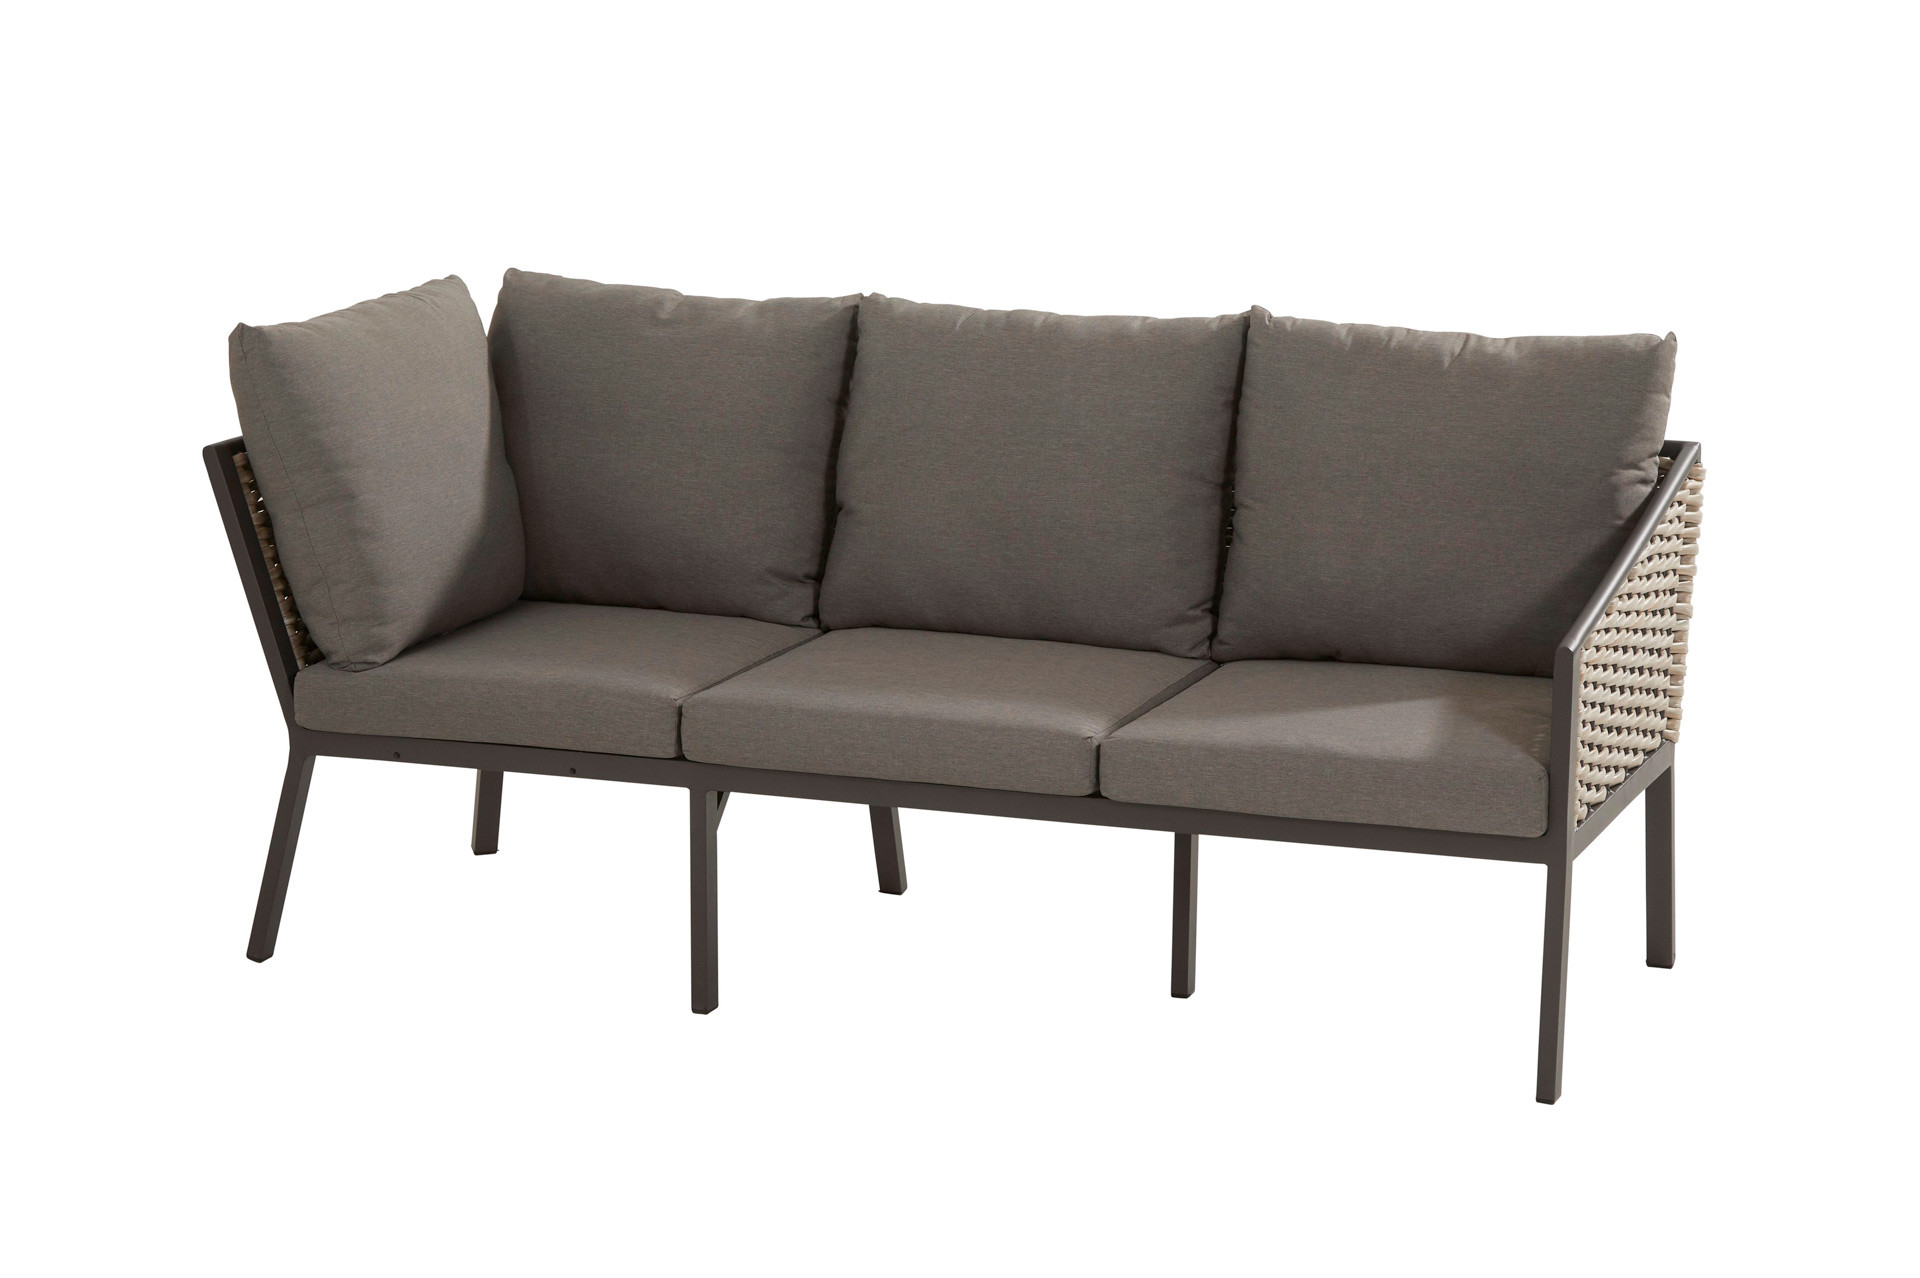 Bo cosy dining 3 seater 2 arms and 7 cushions